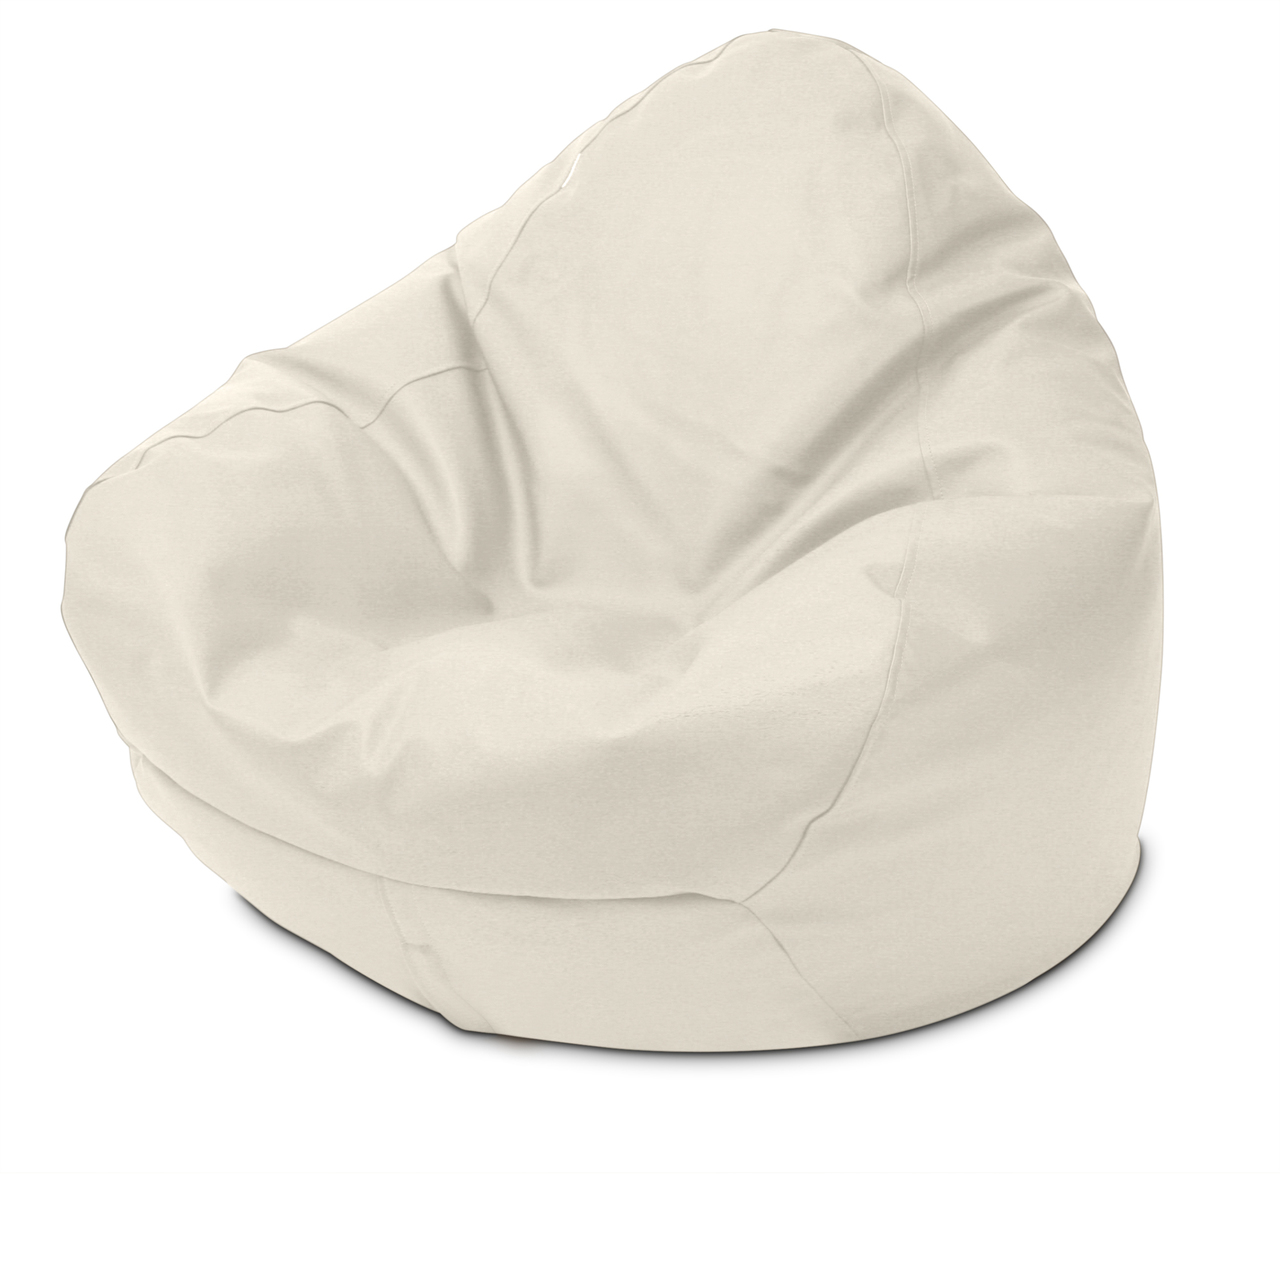 Classic Queen Size Bean Bag in marshmallow